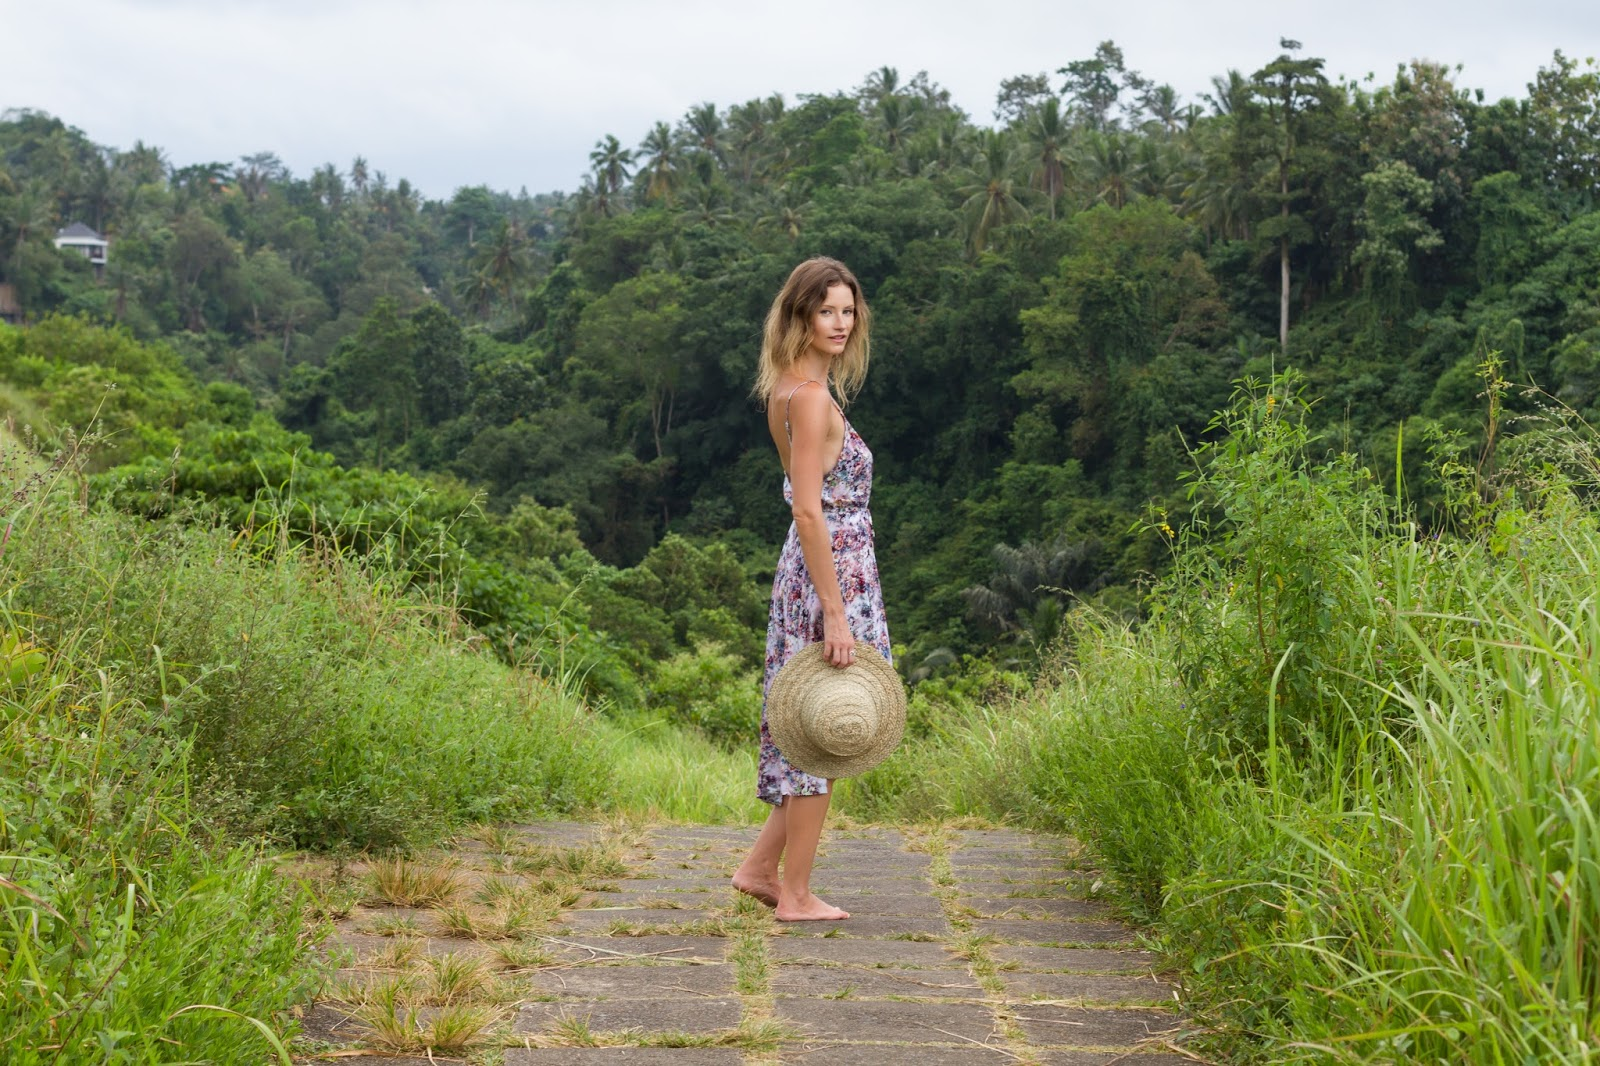 Fashion and travel blogger, Alison Hutchinson, is wearing a floral print bohemian KAYVALYA dress at the Ridge Walk in Ubud, Bali